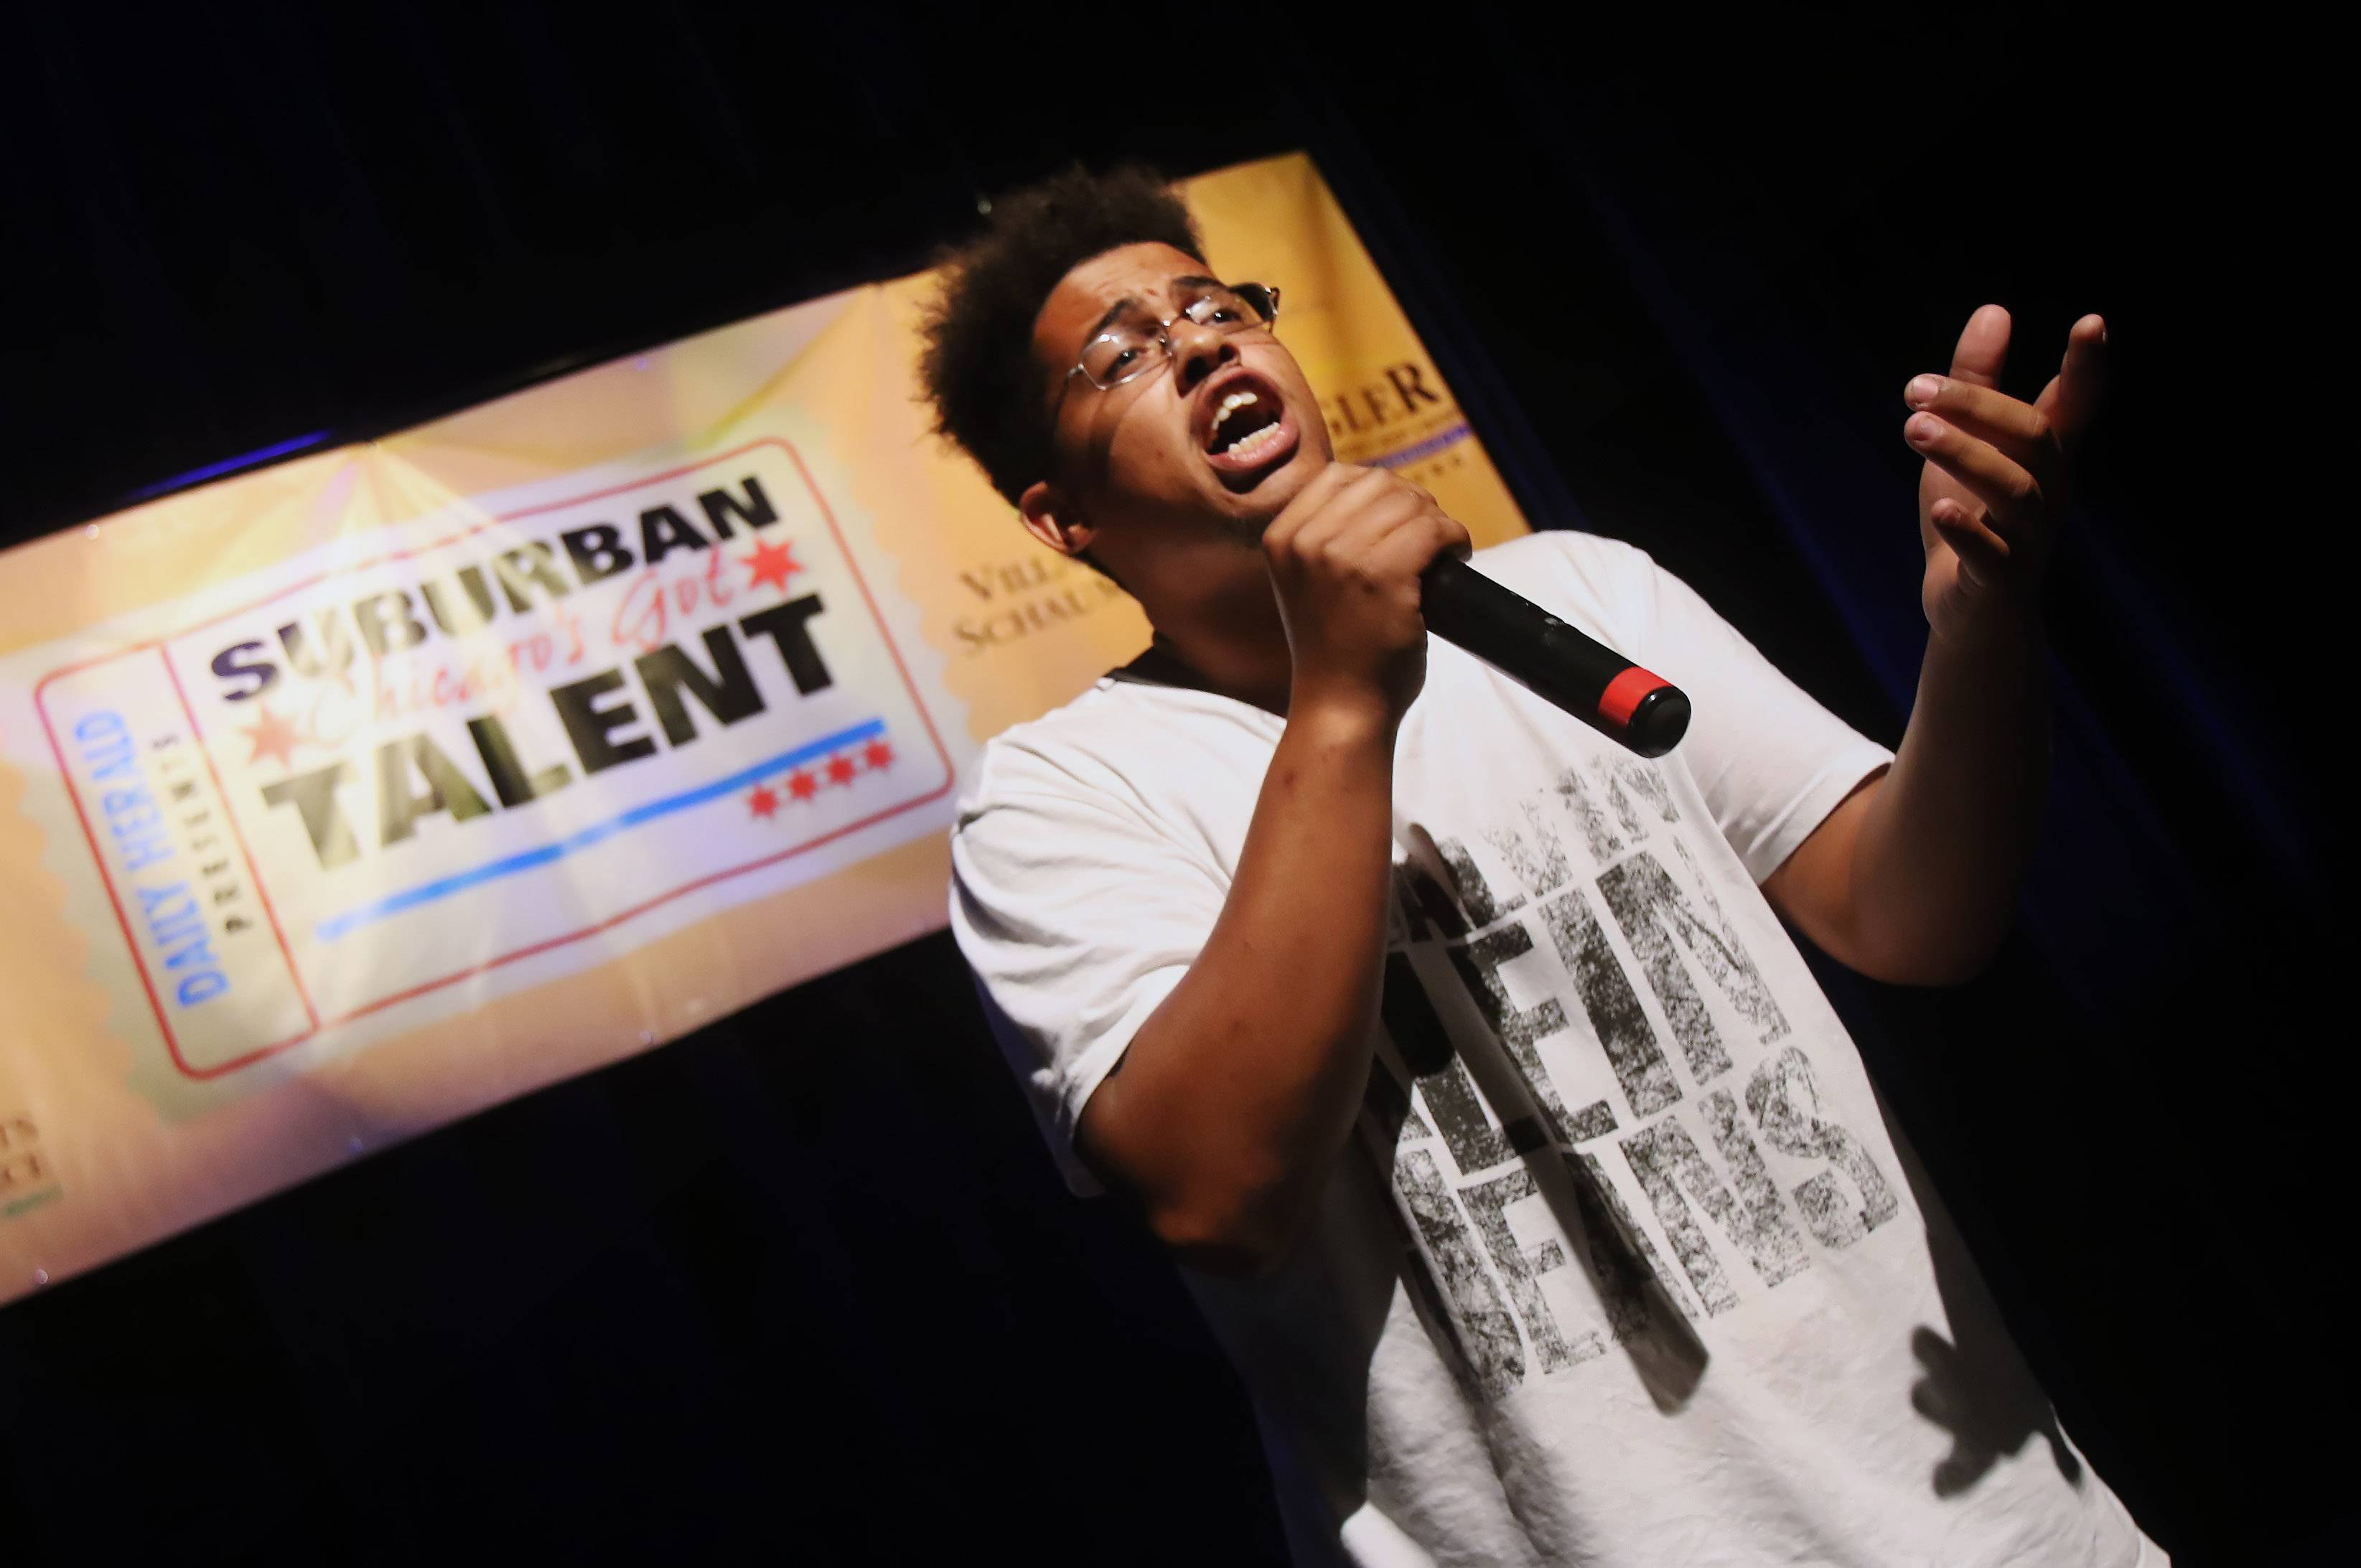 Gilbert R. Boucher II/gboucher@dailyherald.comLucky of Arlington Heights sings during Suburban Chicago's Got Talent competition on Sunday at the Prairie Center for the Arts in Schaumburg. The top 20 finalists performed in hopes of winning a grand prize that includes the opportunity to open for a national act at the Arcada Theatre in St. Charles.